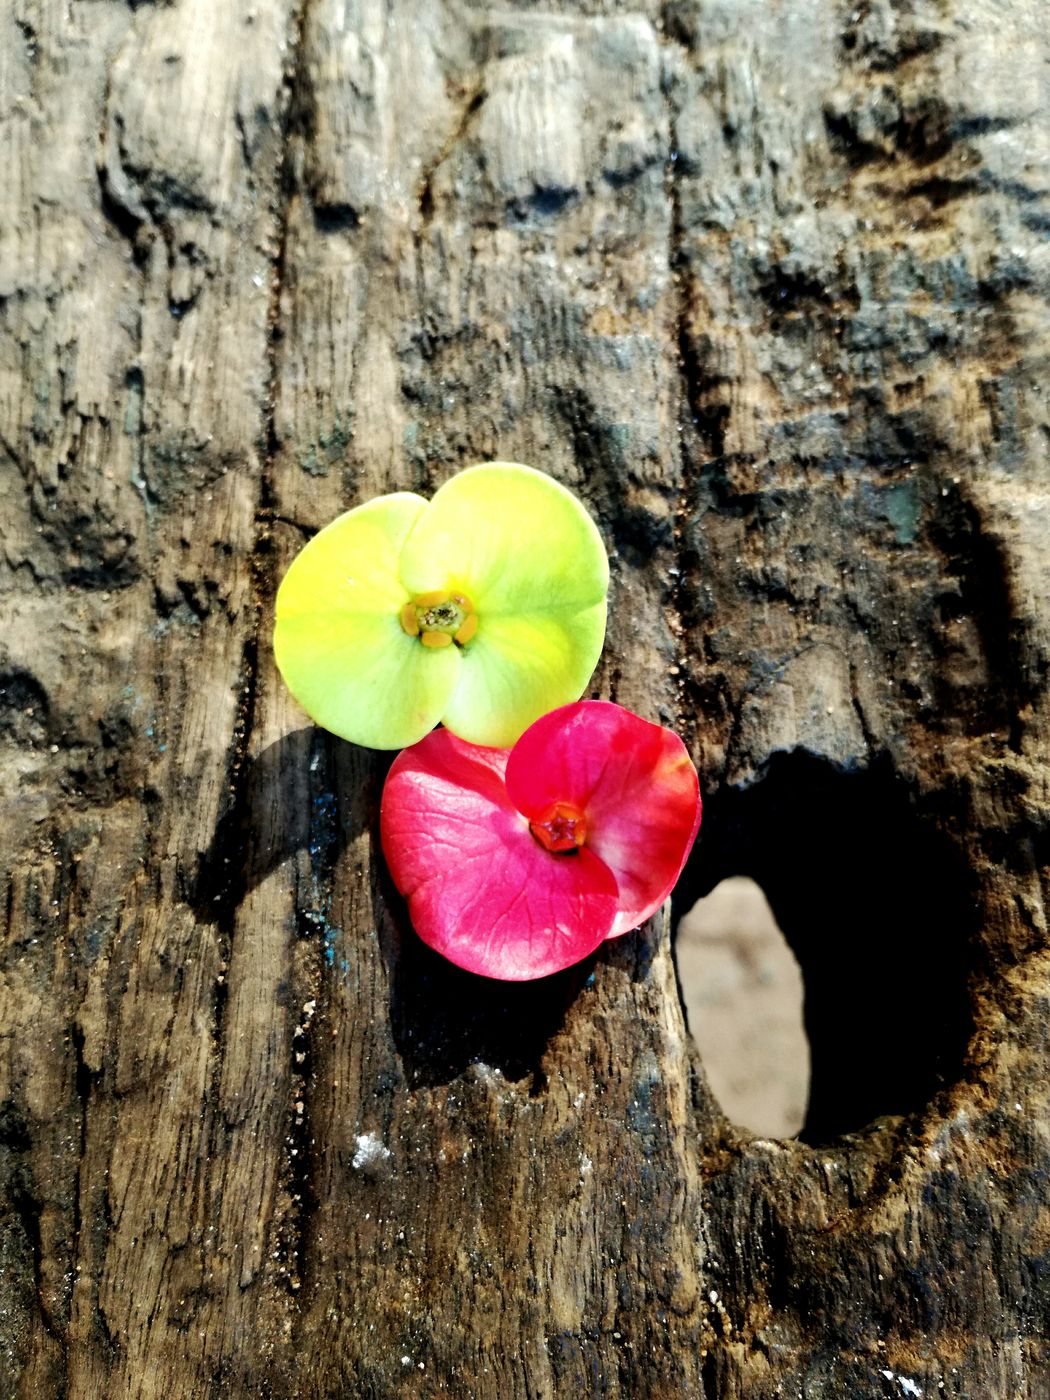 Neon Life Flower Freshness Flower Head Neon Neonpink Nature Day Sleeper Wood